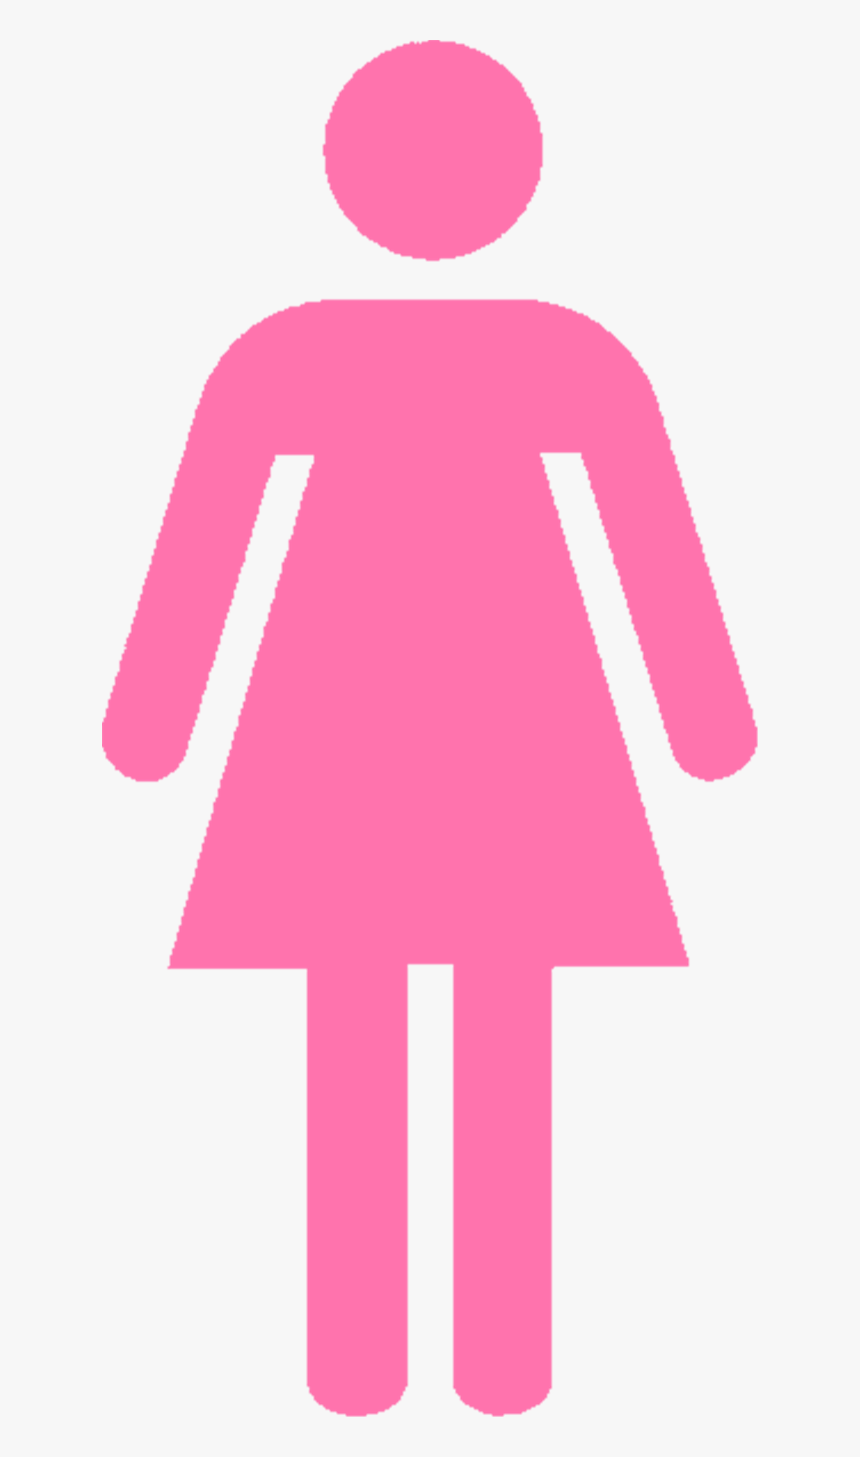 Girls Bathroom Sign Red Female Toilet Sign Hd Png Download